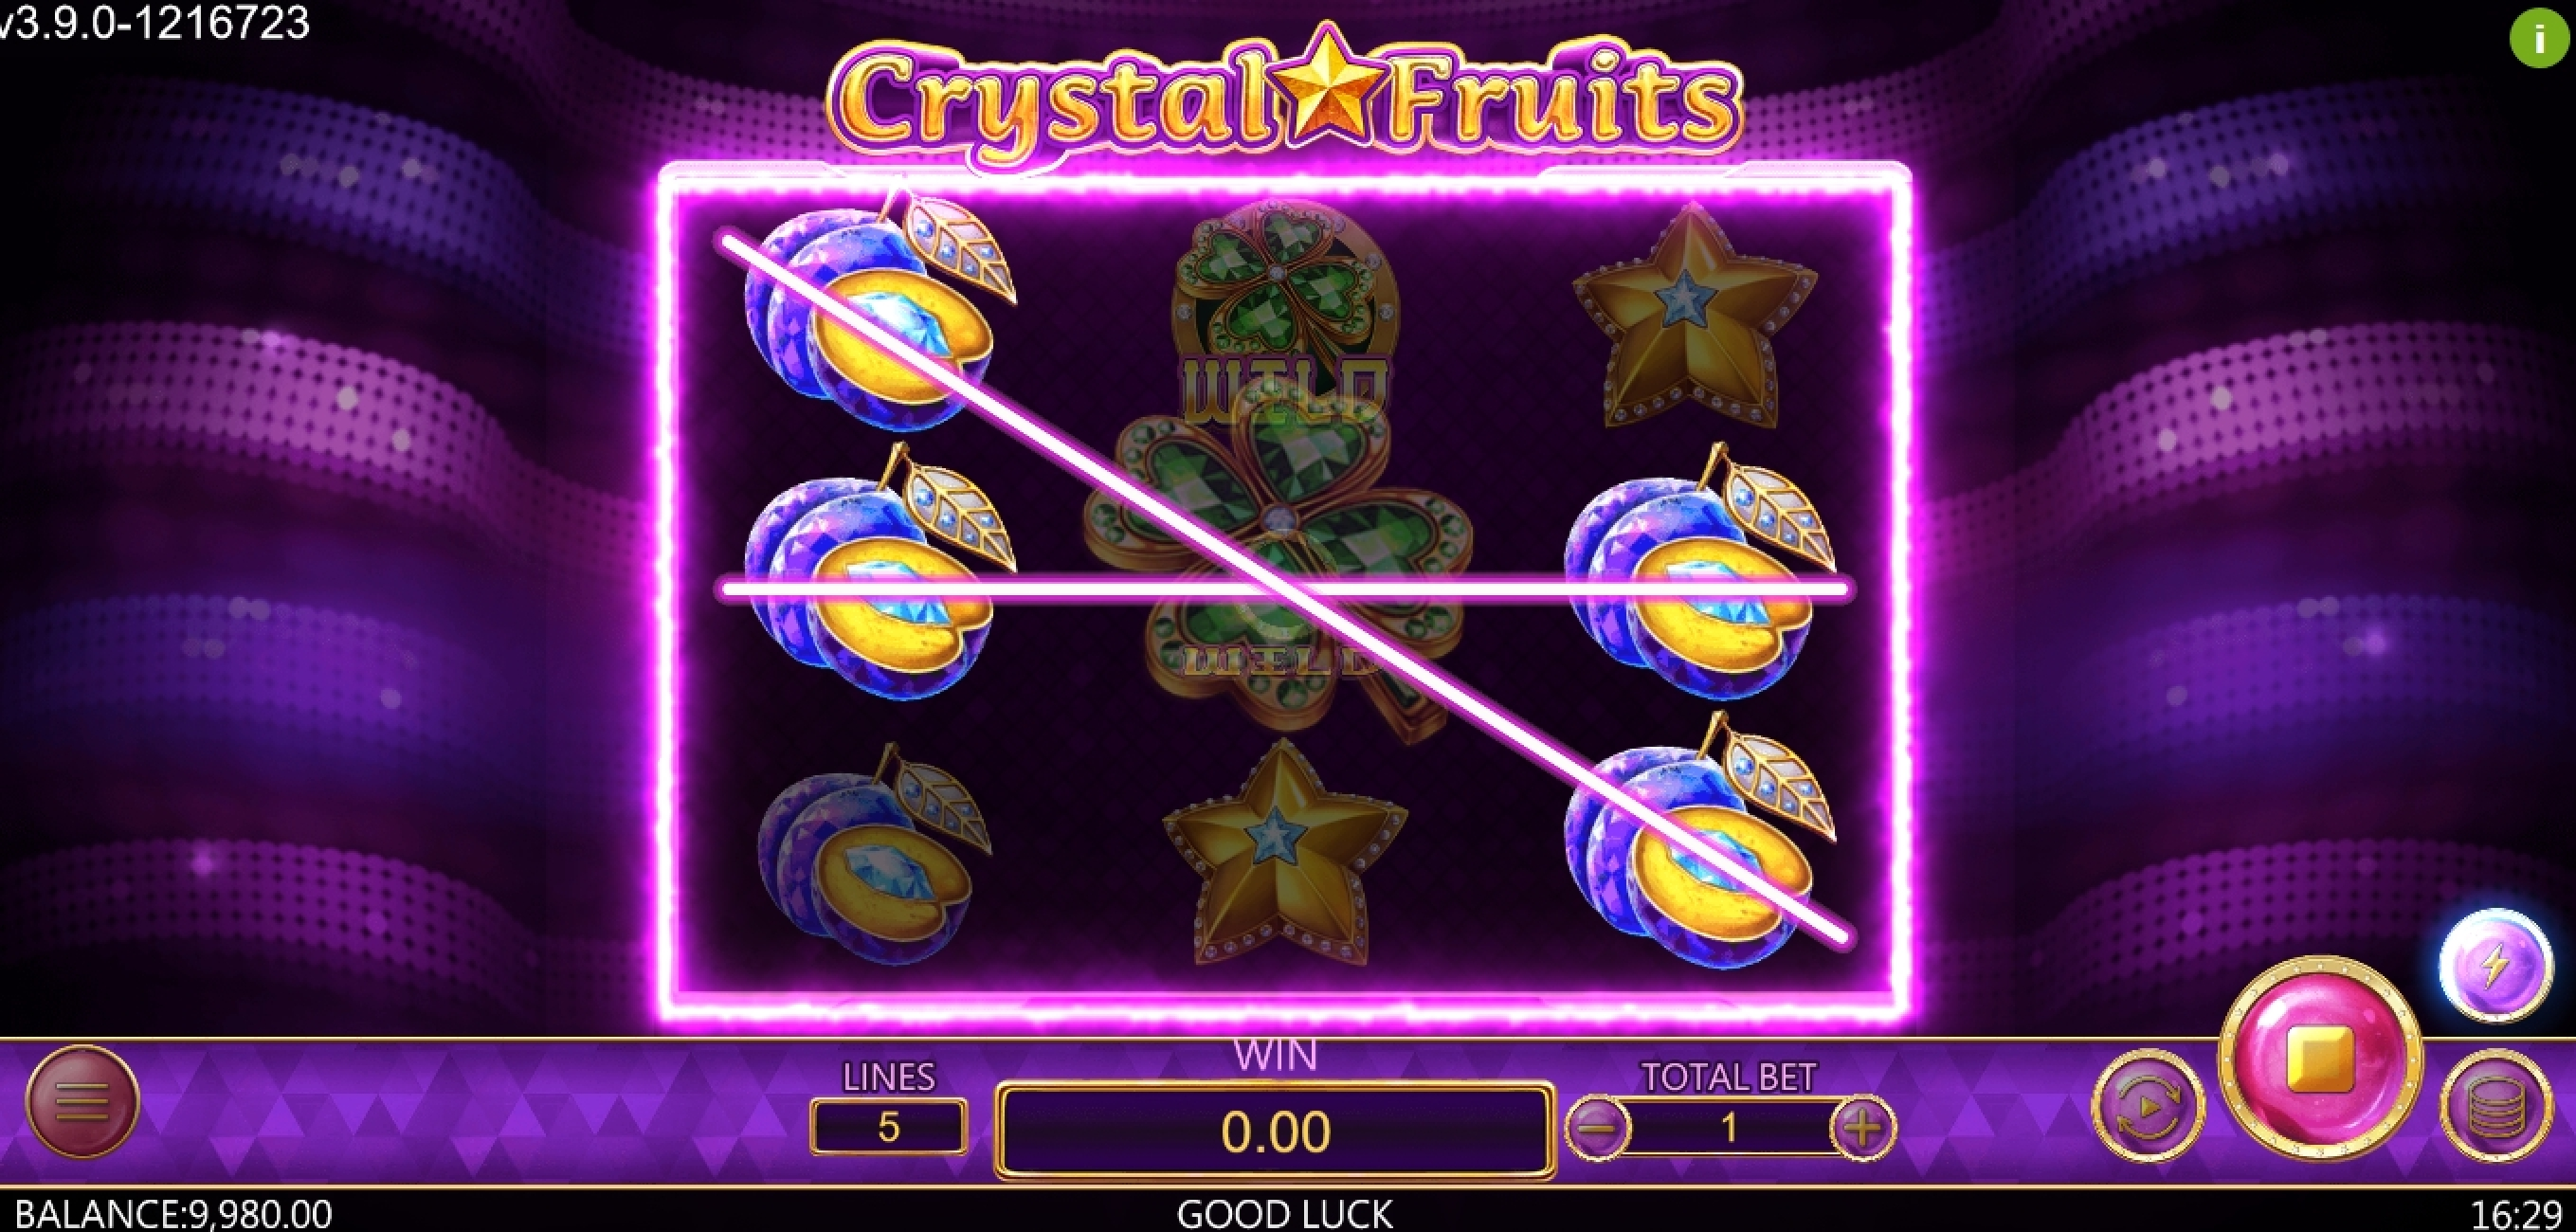 Win Money in Crystal Fruits (Dragoon Soft) Free Slot Game by Dragoon Soft